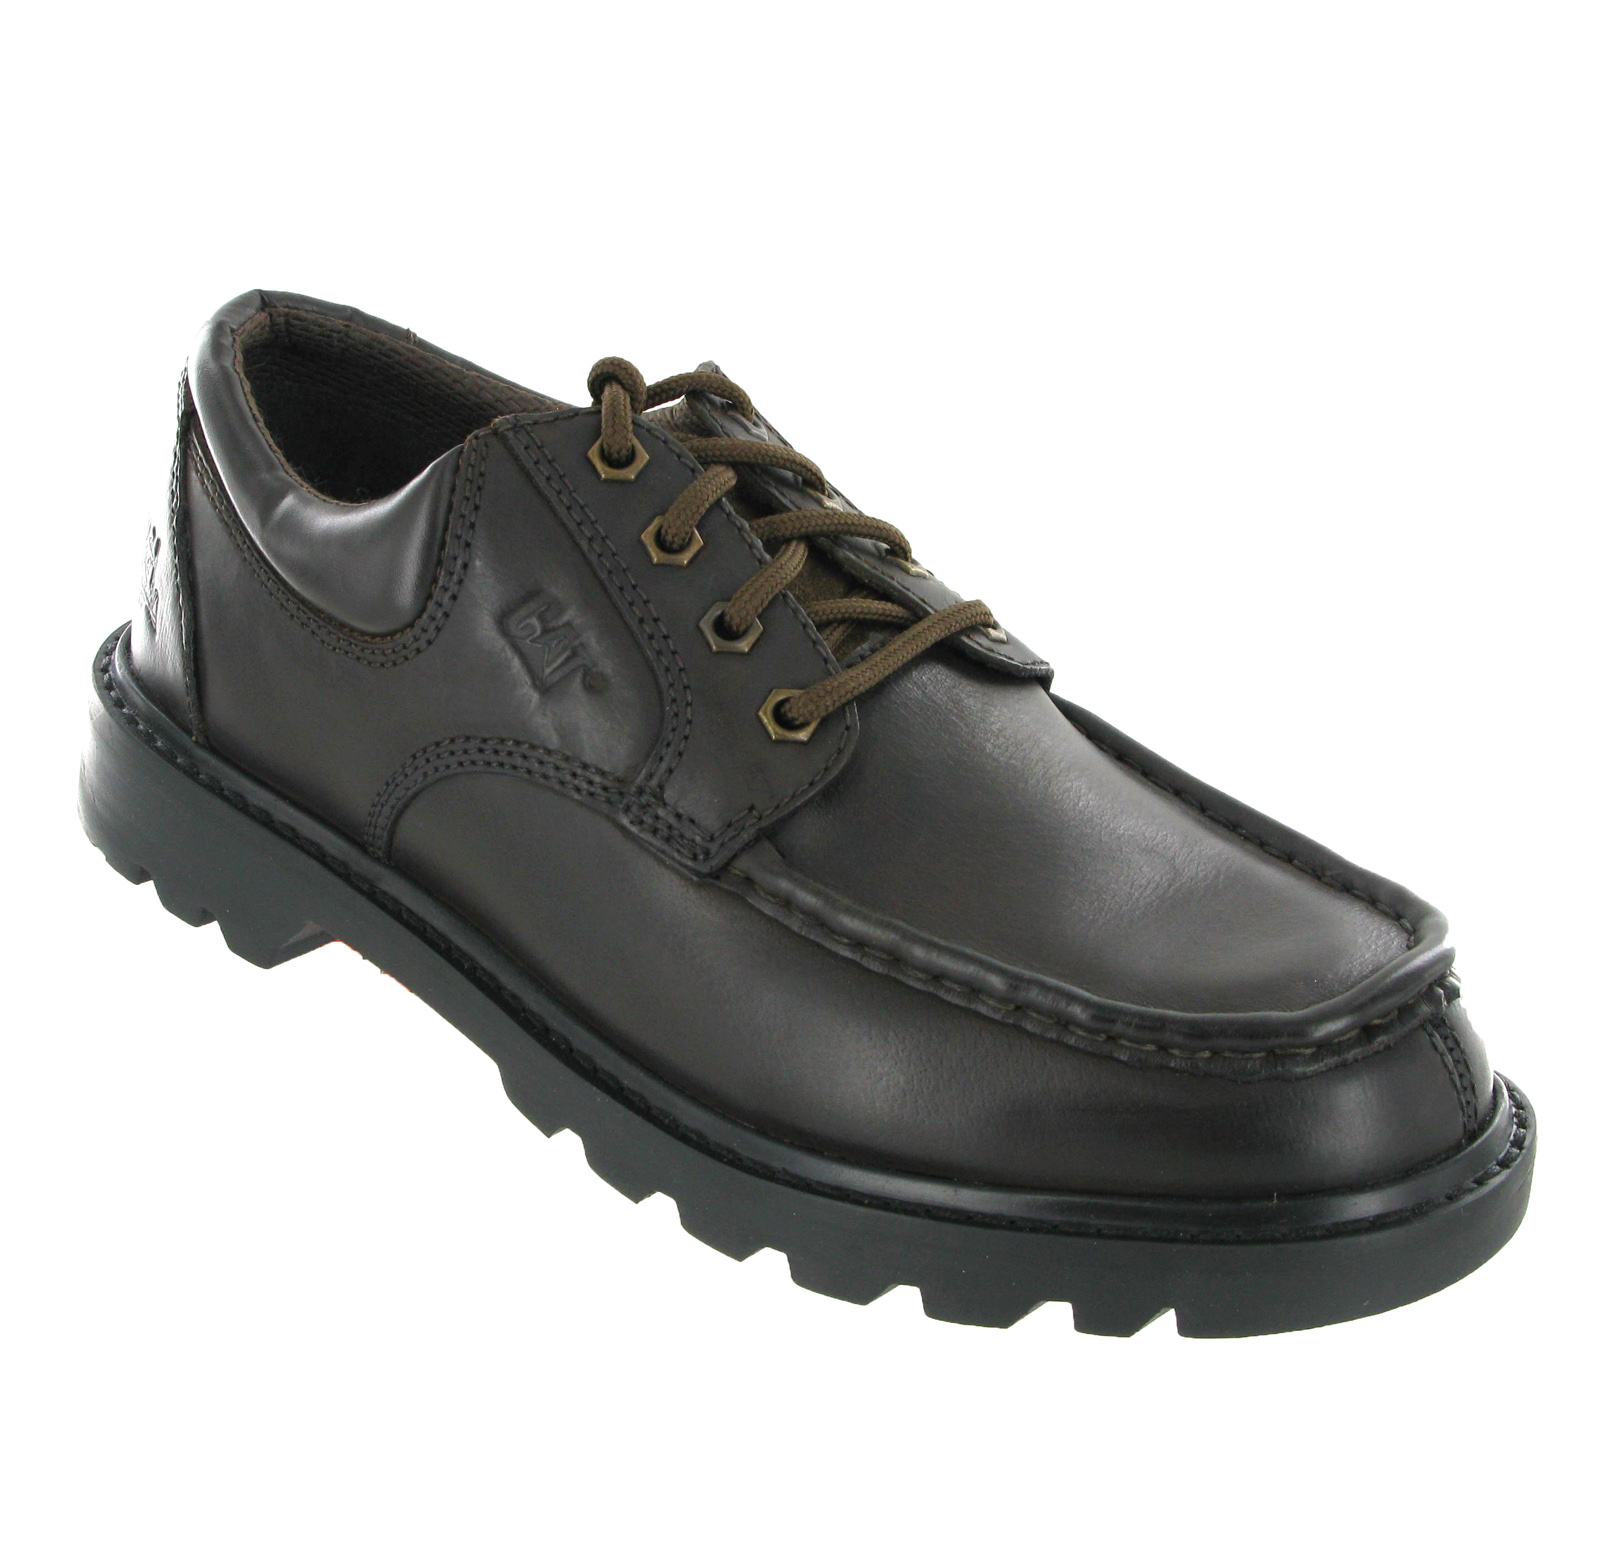 Get free shipping on men's designer formal shoes at Bergdorf Goodman by Neiman Marcus. Shop loafers, boots & more.